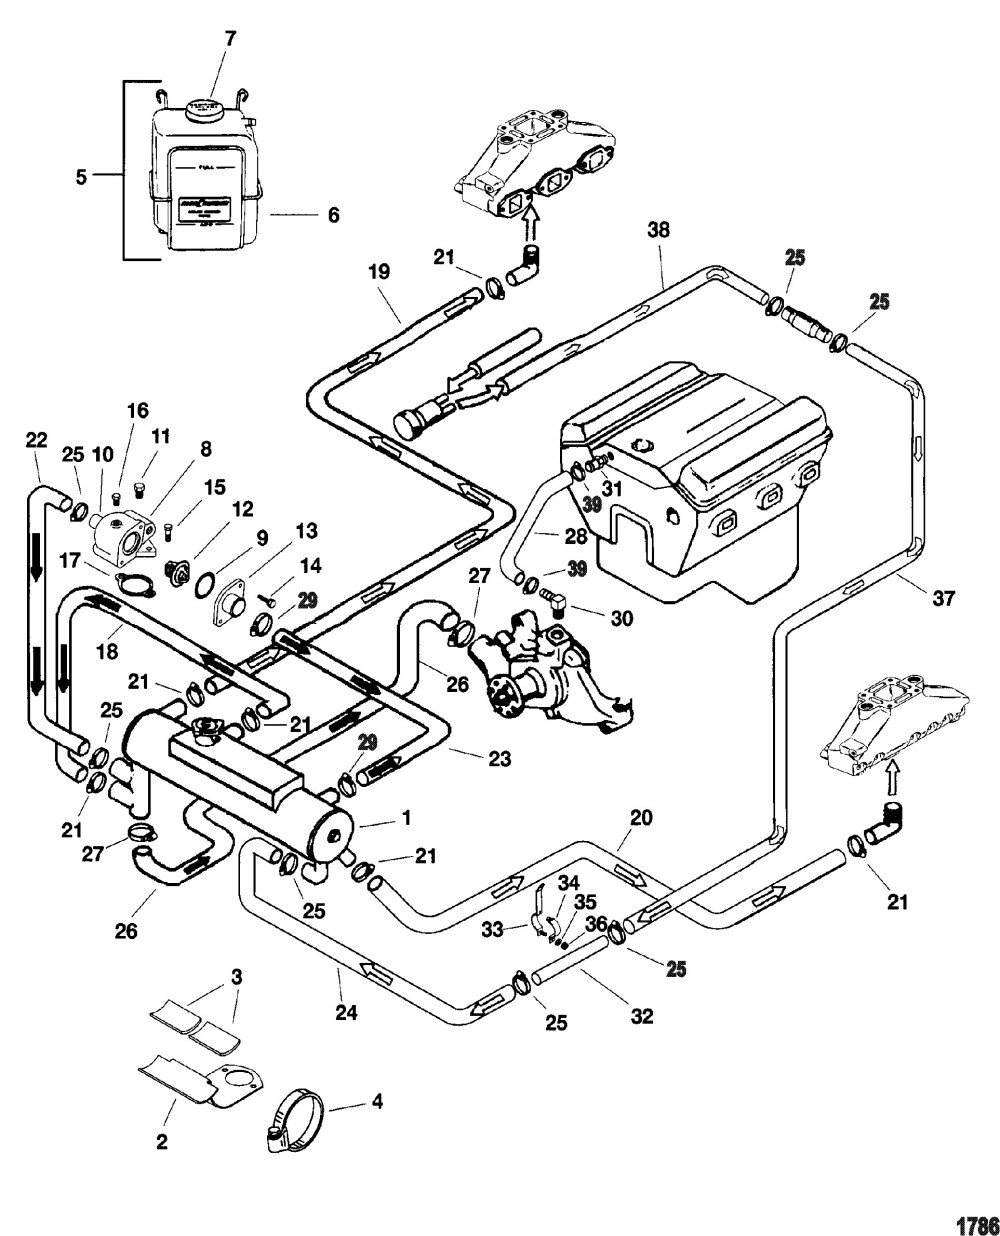 medium resolution of 2000 chrysler 3 8 engine diagram data wiring diagramchrysler town and country 3 8 engine diagram